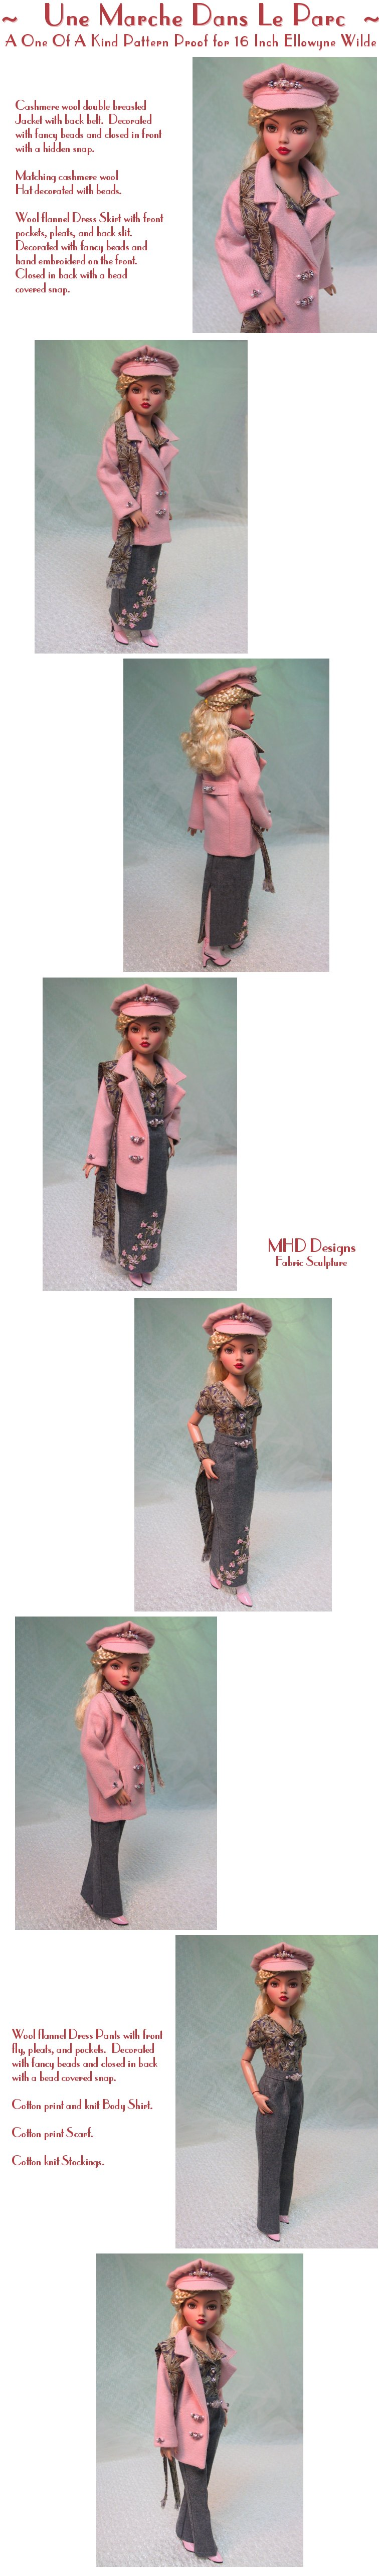 MHD Designs - A Walk In The Park - a One Of A Kind Pattern Proof - High Resolution Photographs, your patience is appreciated!